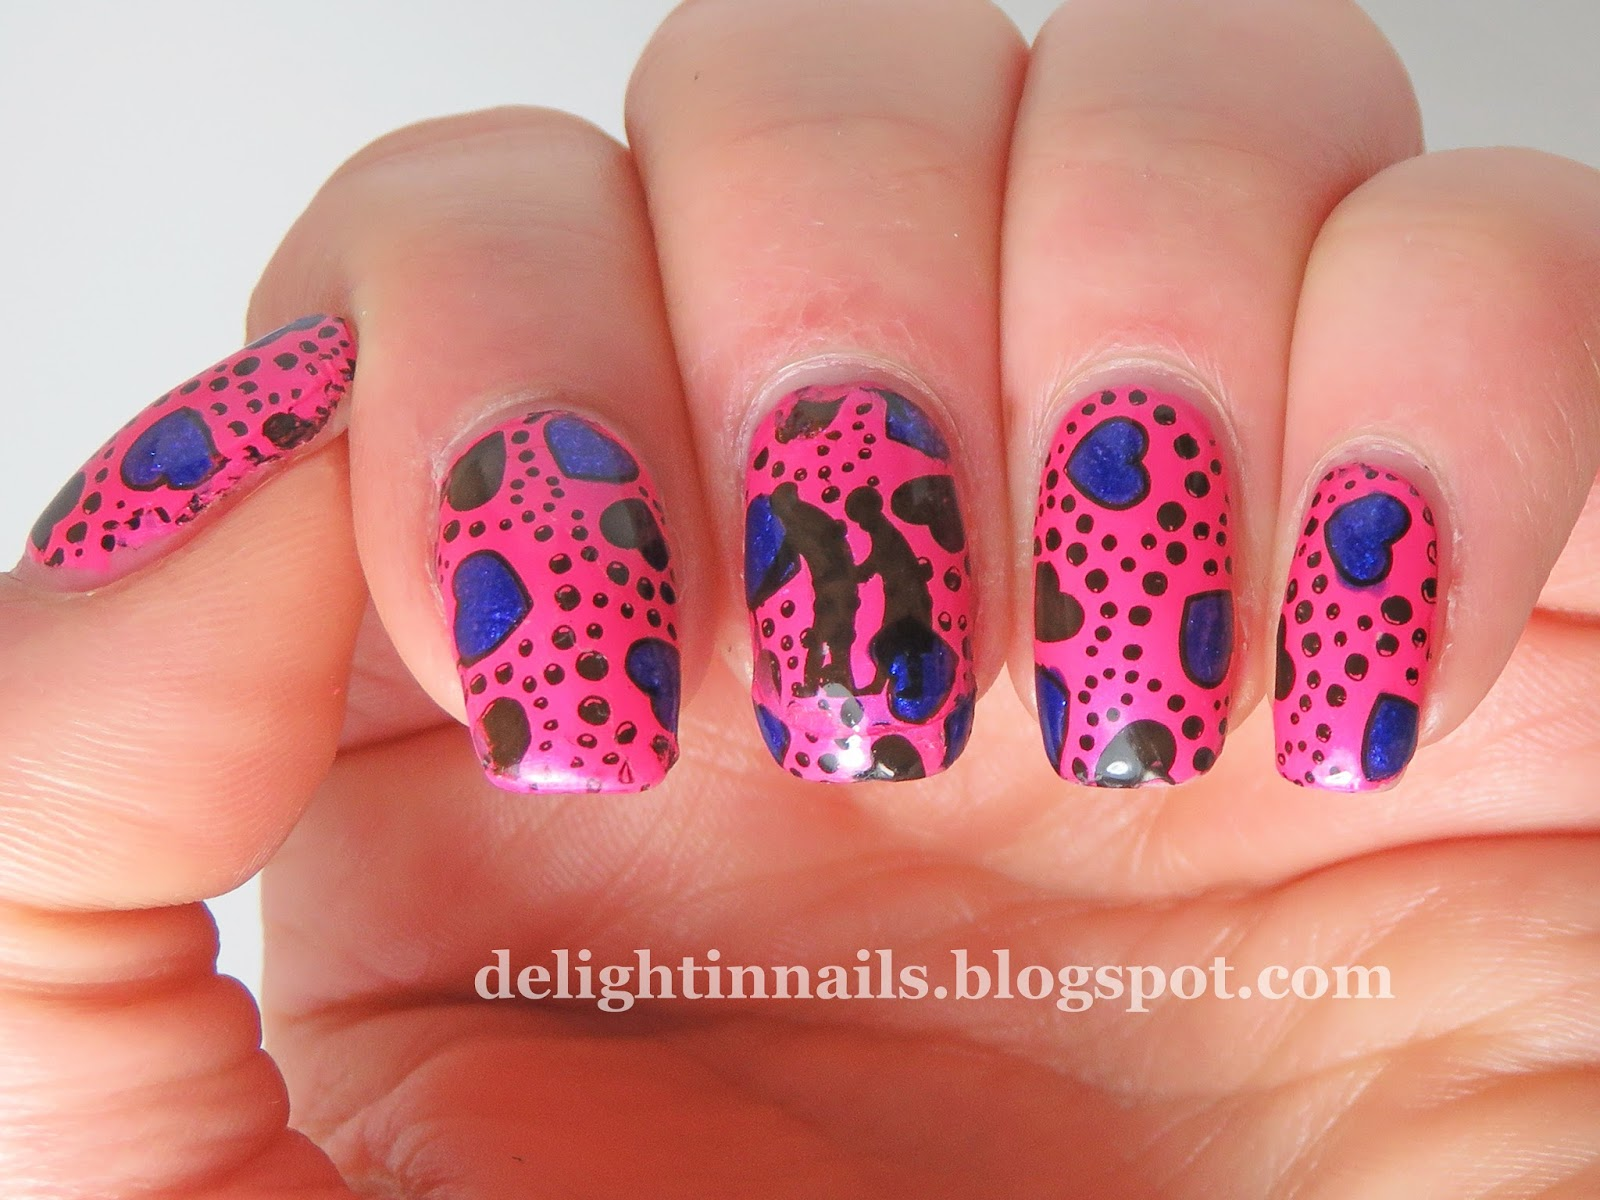 Delight In Nails: 40 Great Nail Art Ideas - Love